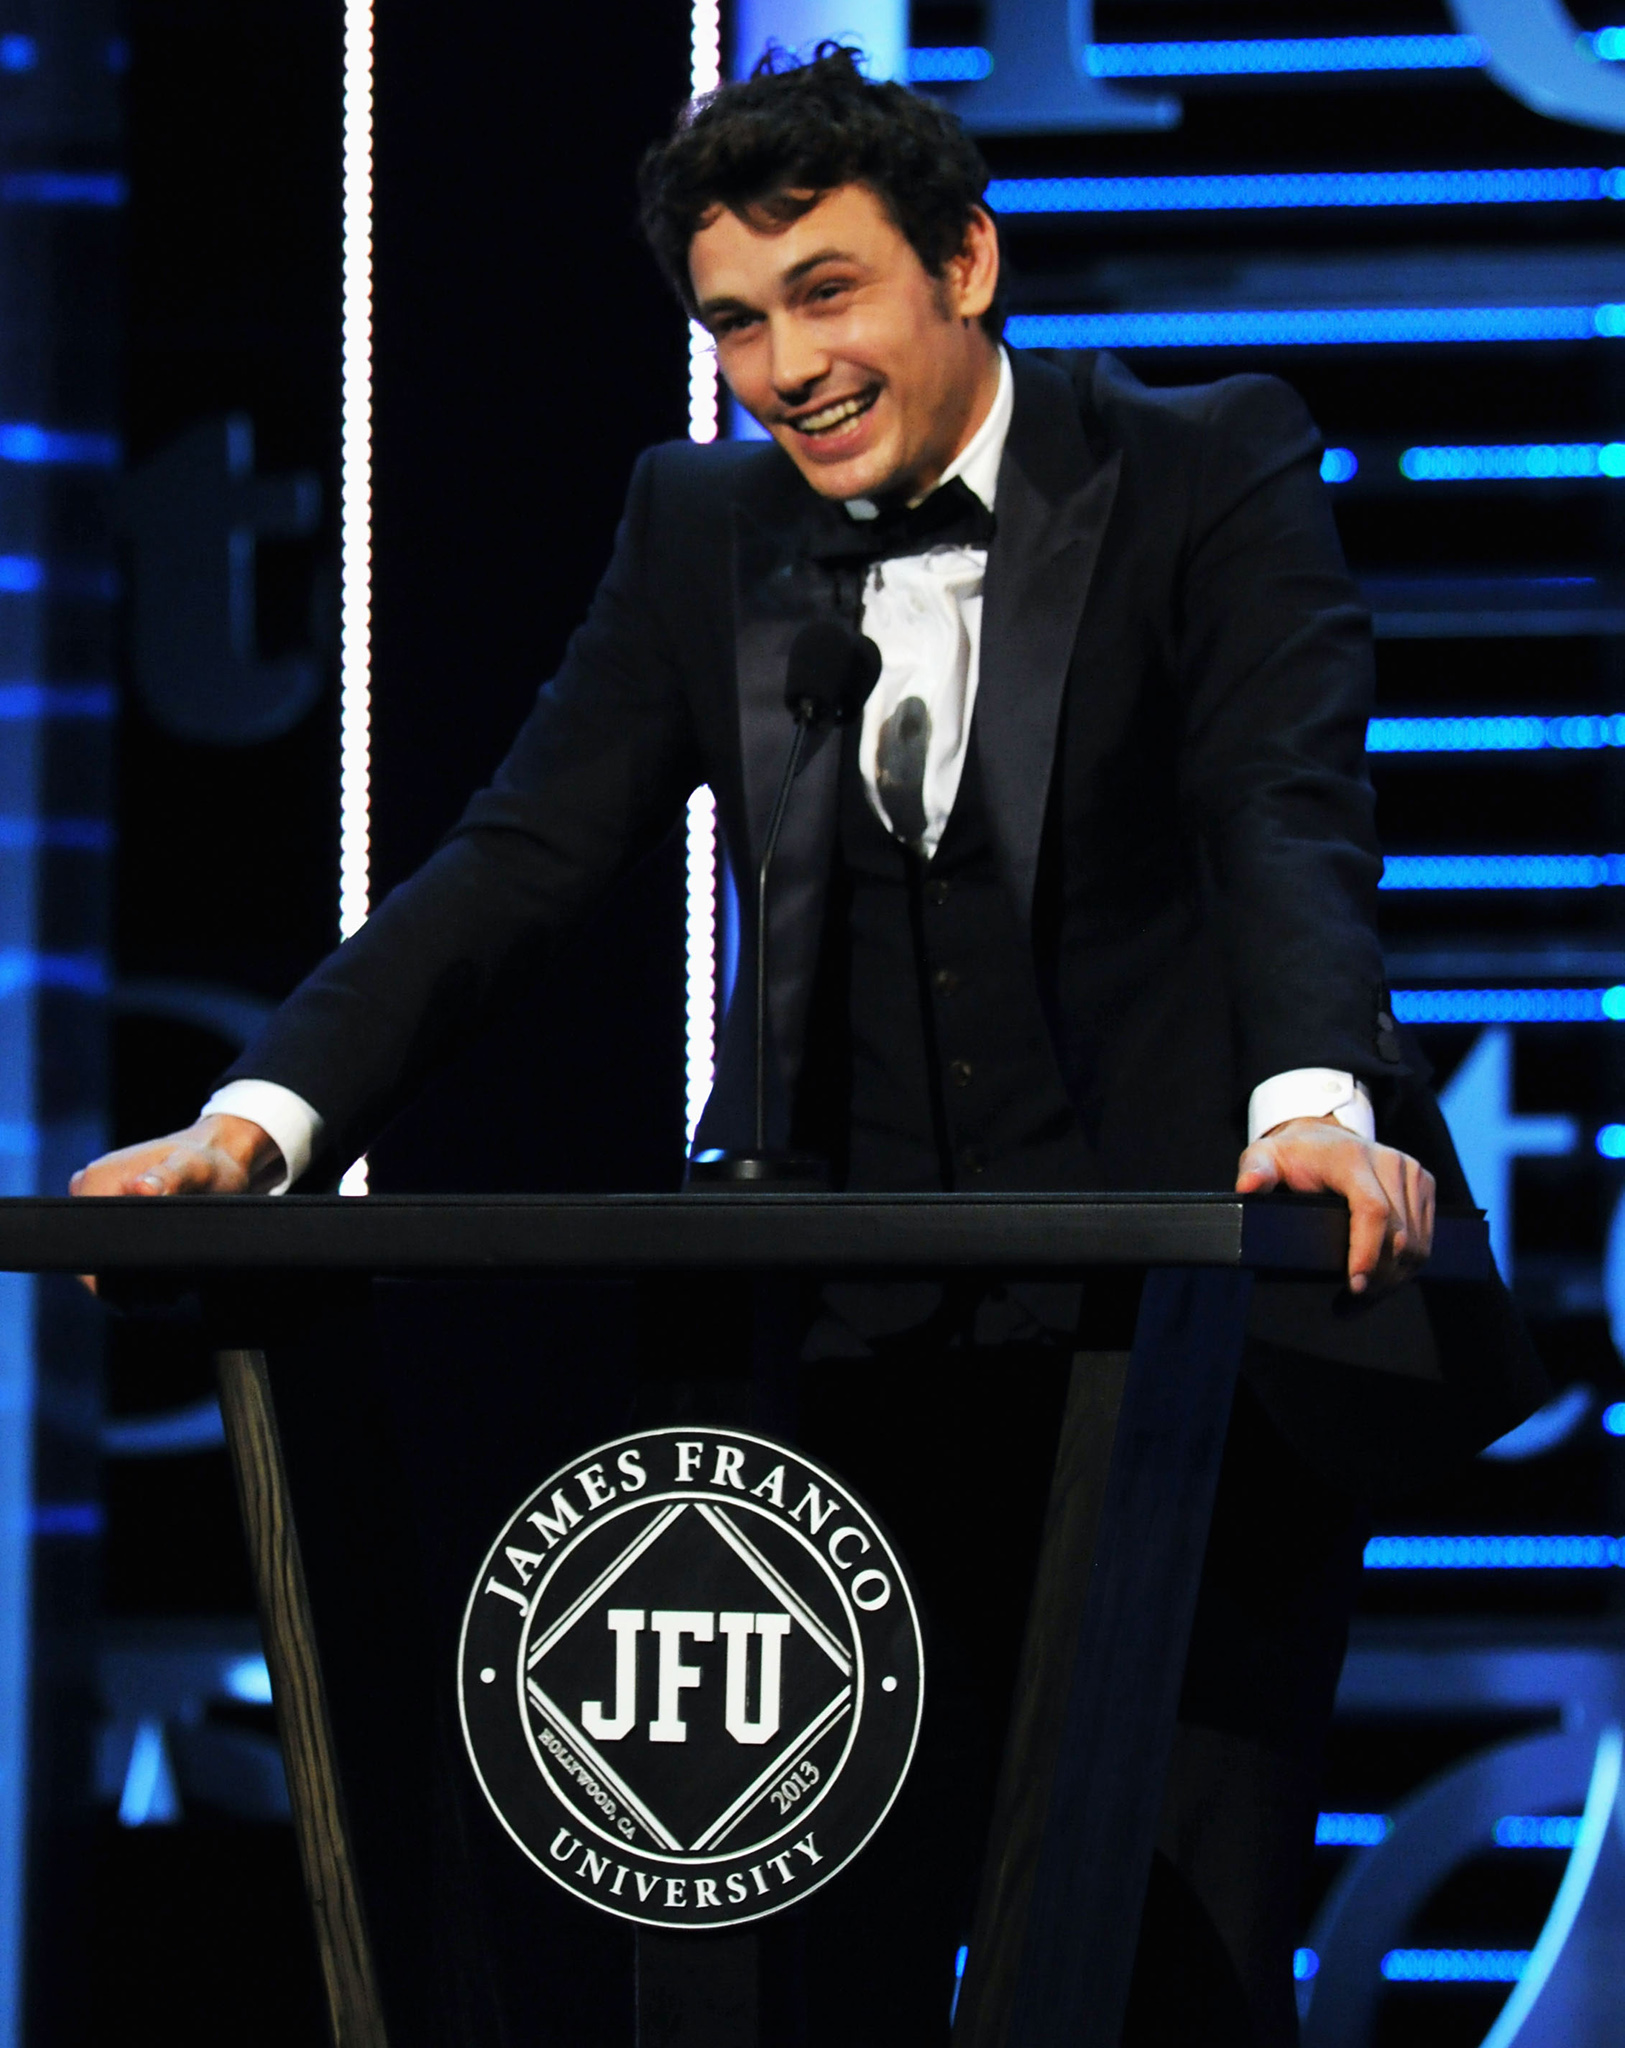 James Franco at his August roast (Getty Images)